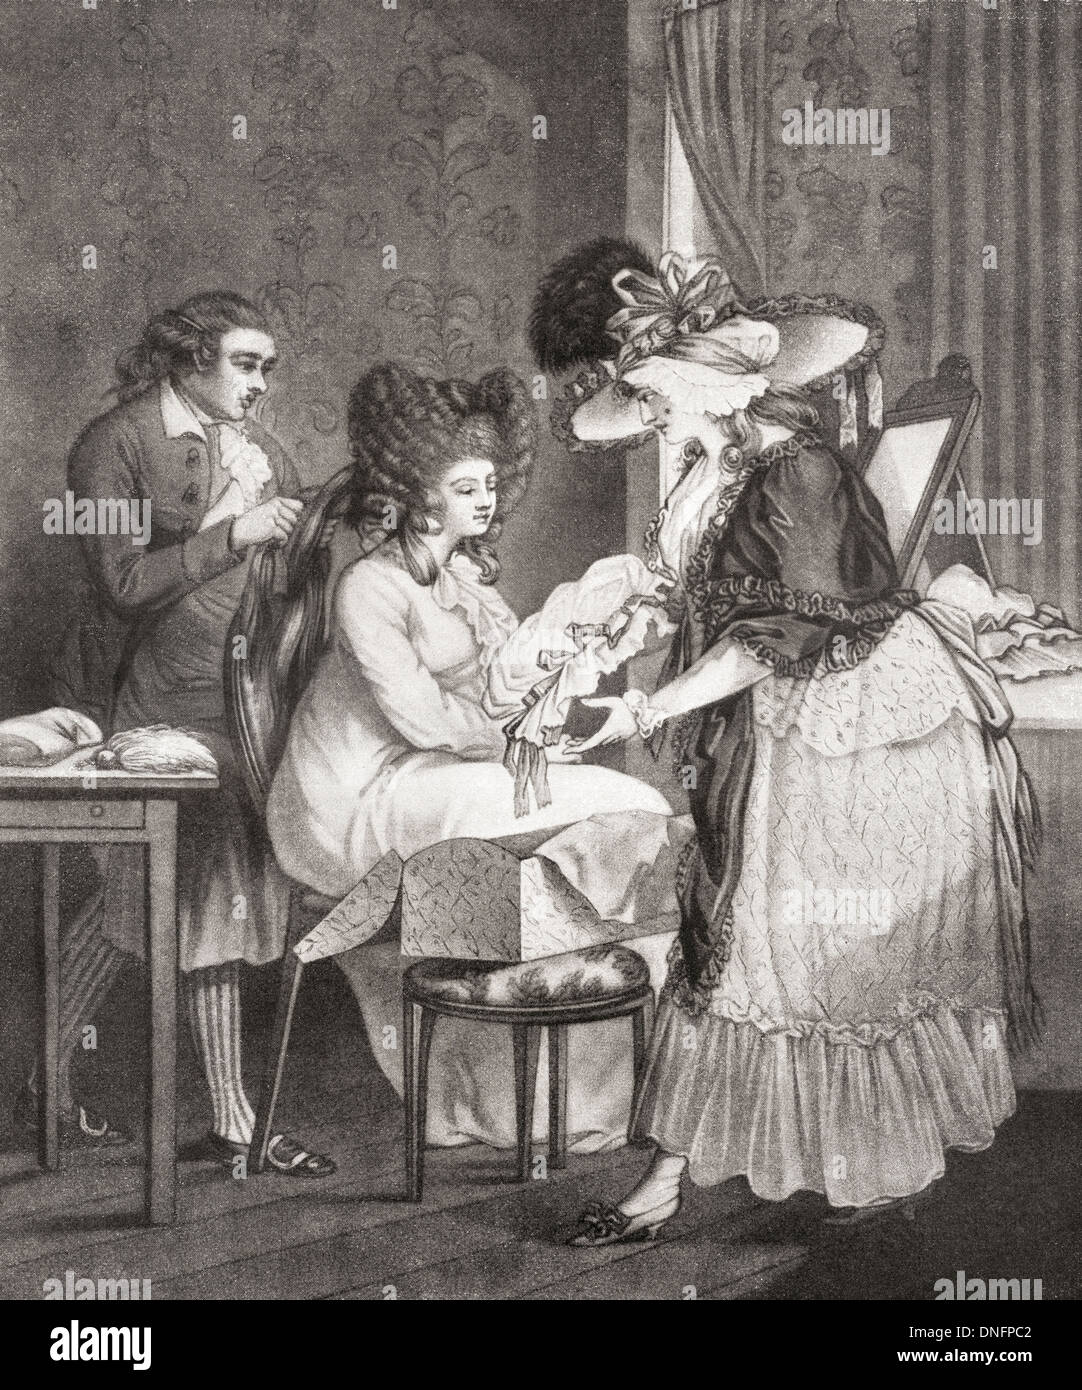 18th century lady at her morning toilette. - Stock Image